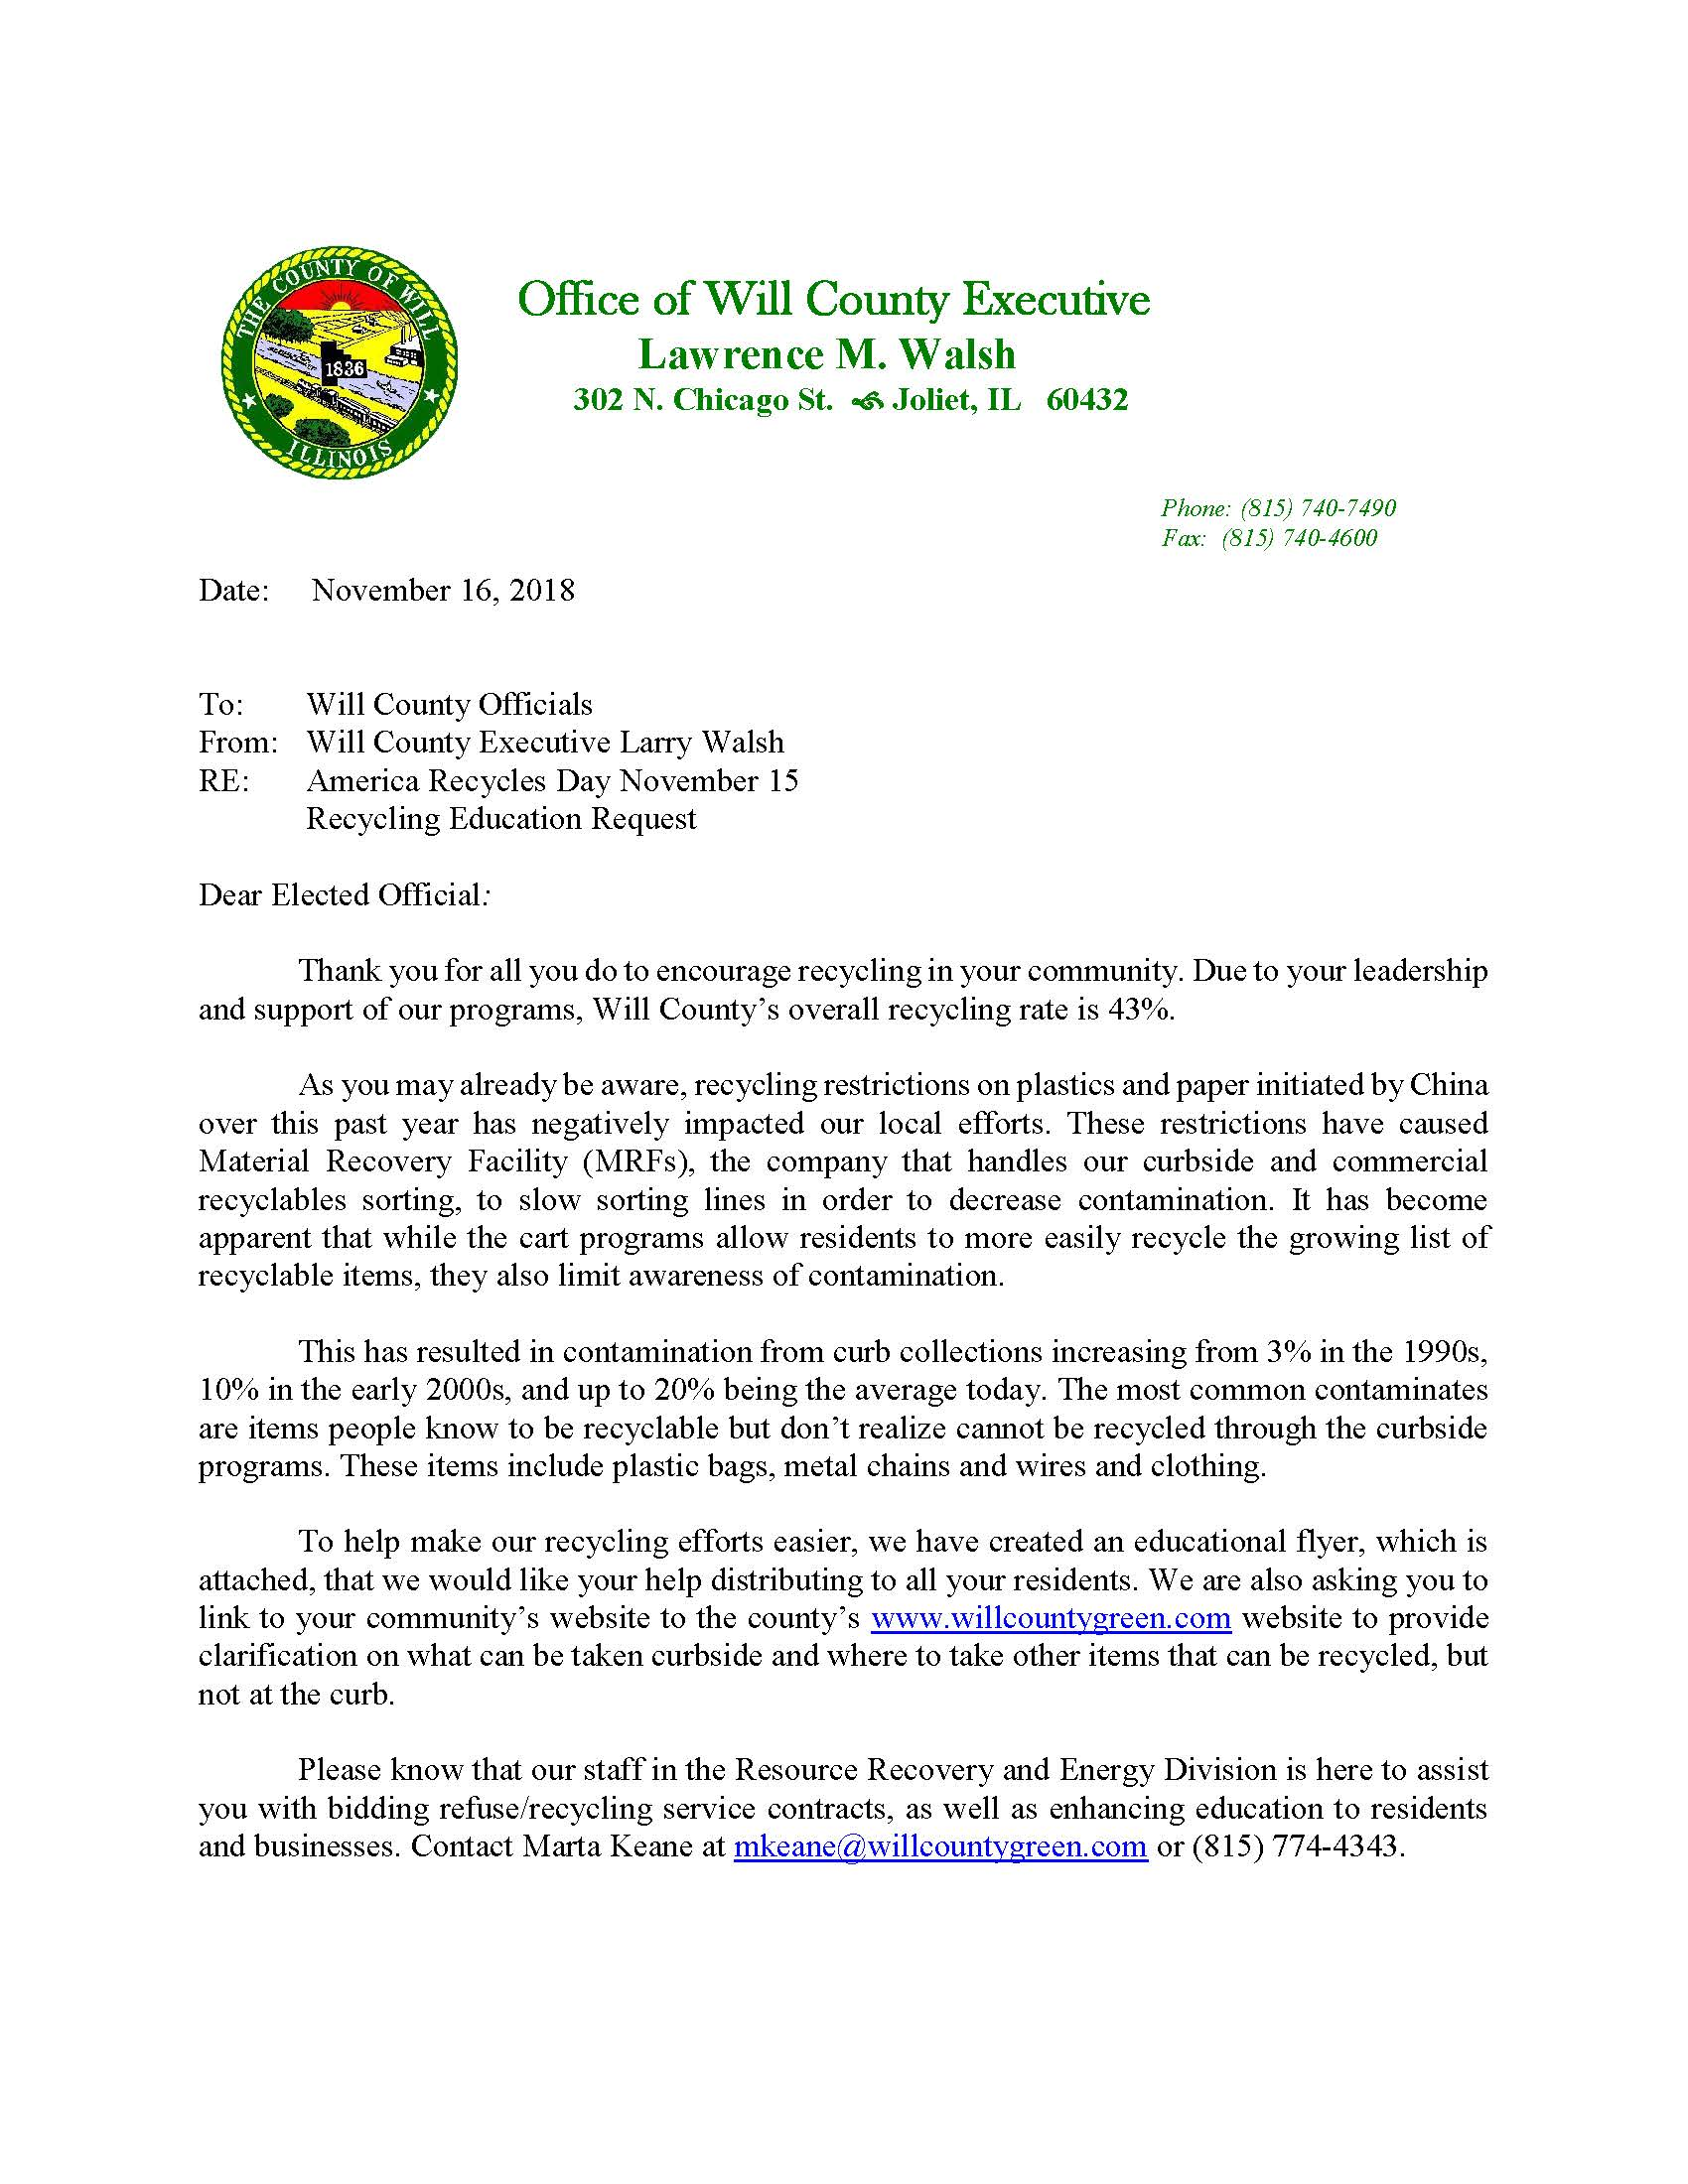 lw letter -- local officals changes in recycling rules 11-16-18_Page_1